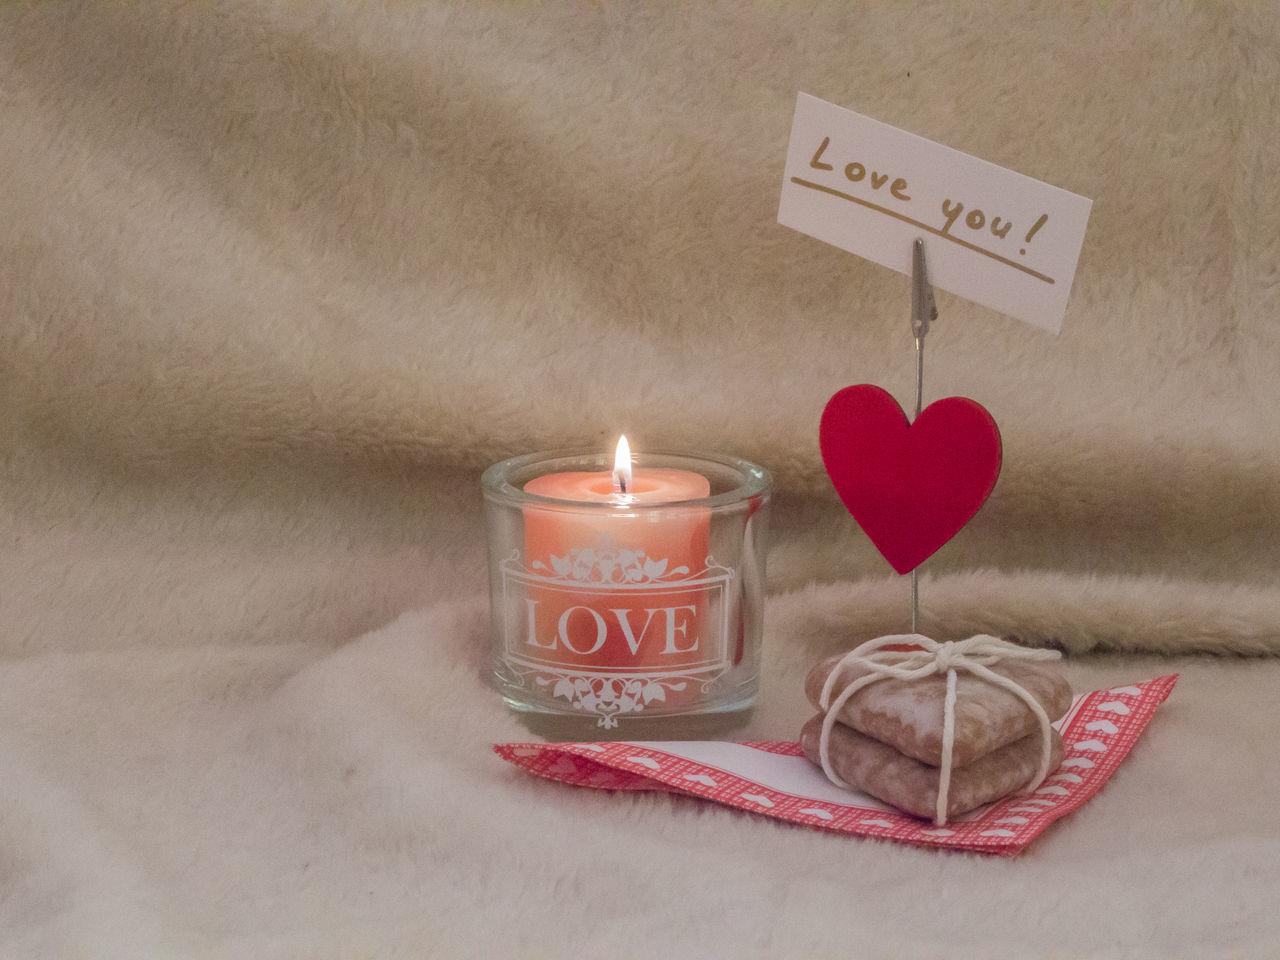 Valentine's day decoration Candle Celebration Celebration Close-up Confession Day Greeting Card  Heart Heart Shape Holiday Home Interior Indoors  Love Love No People Red Table Tea Light Text Valentine's Day